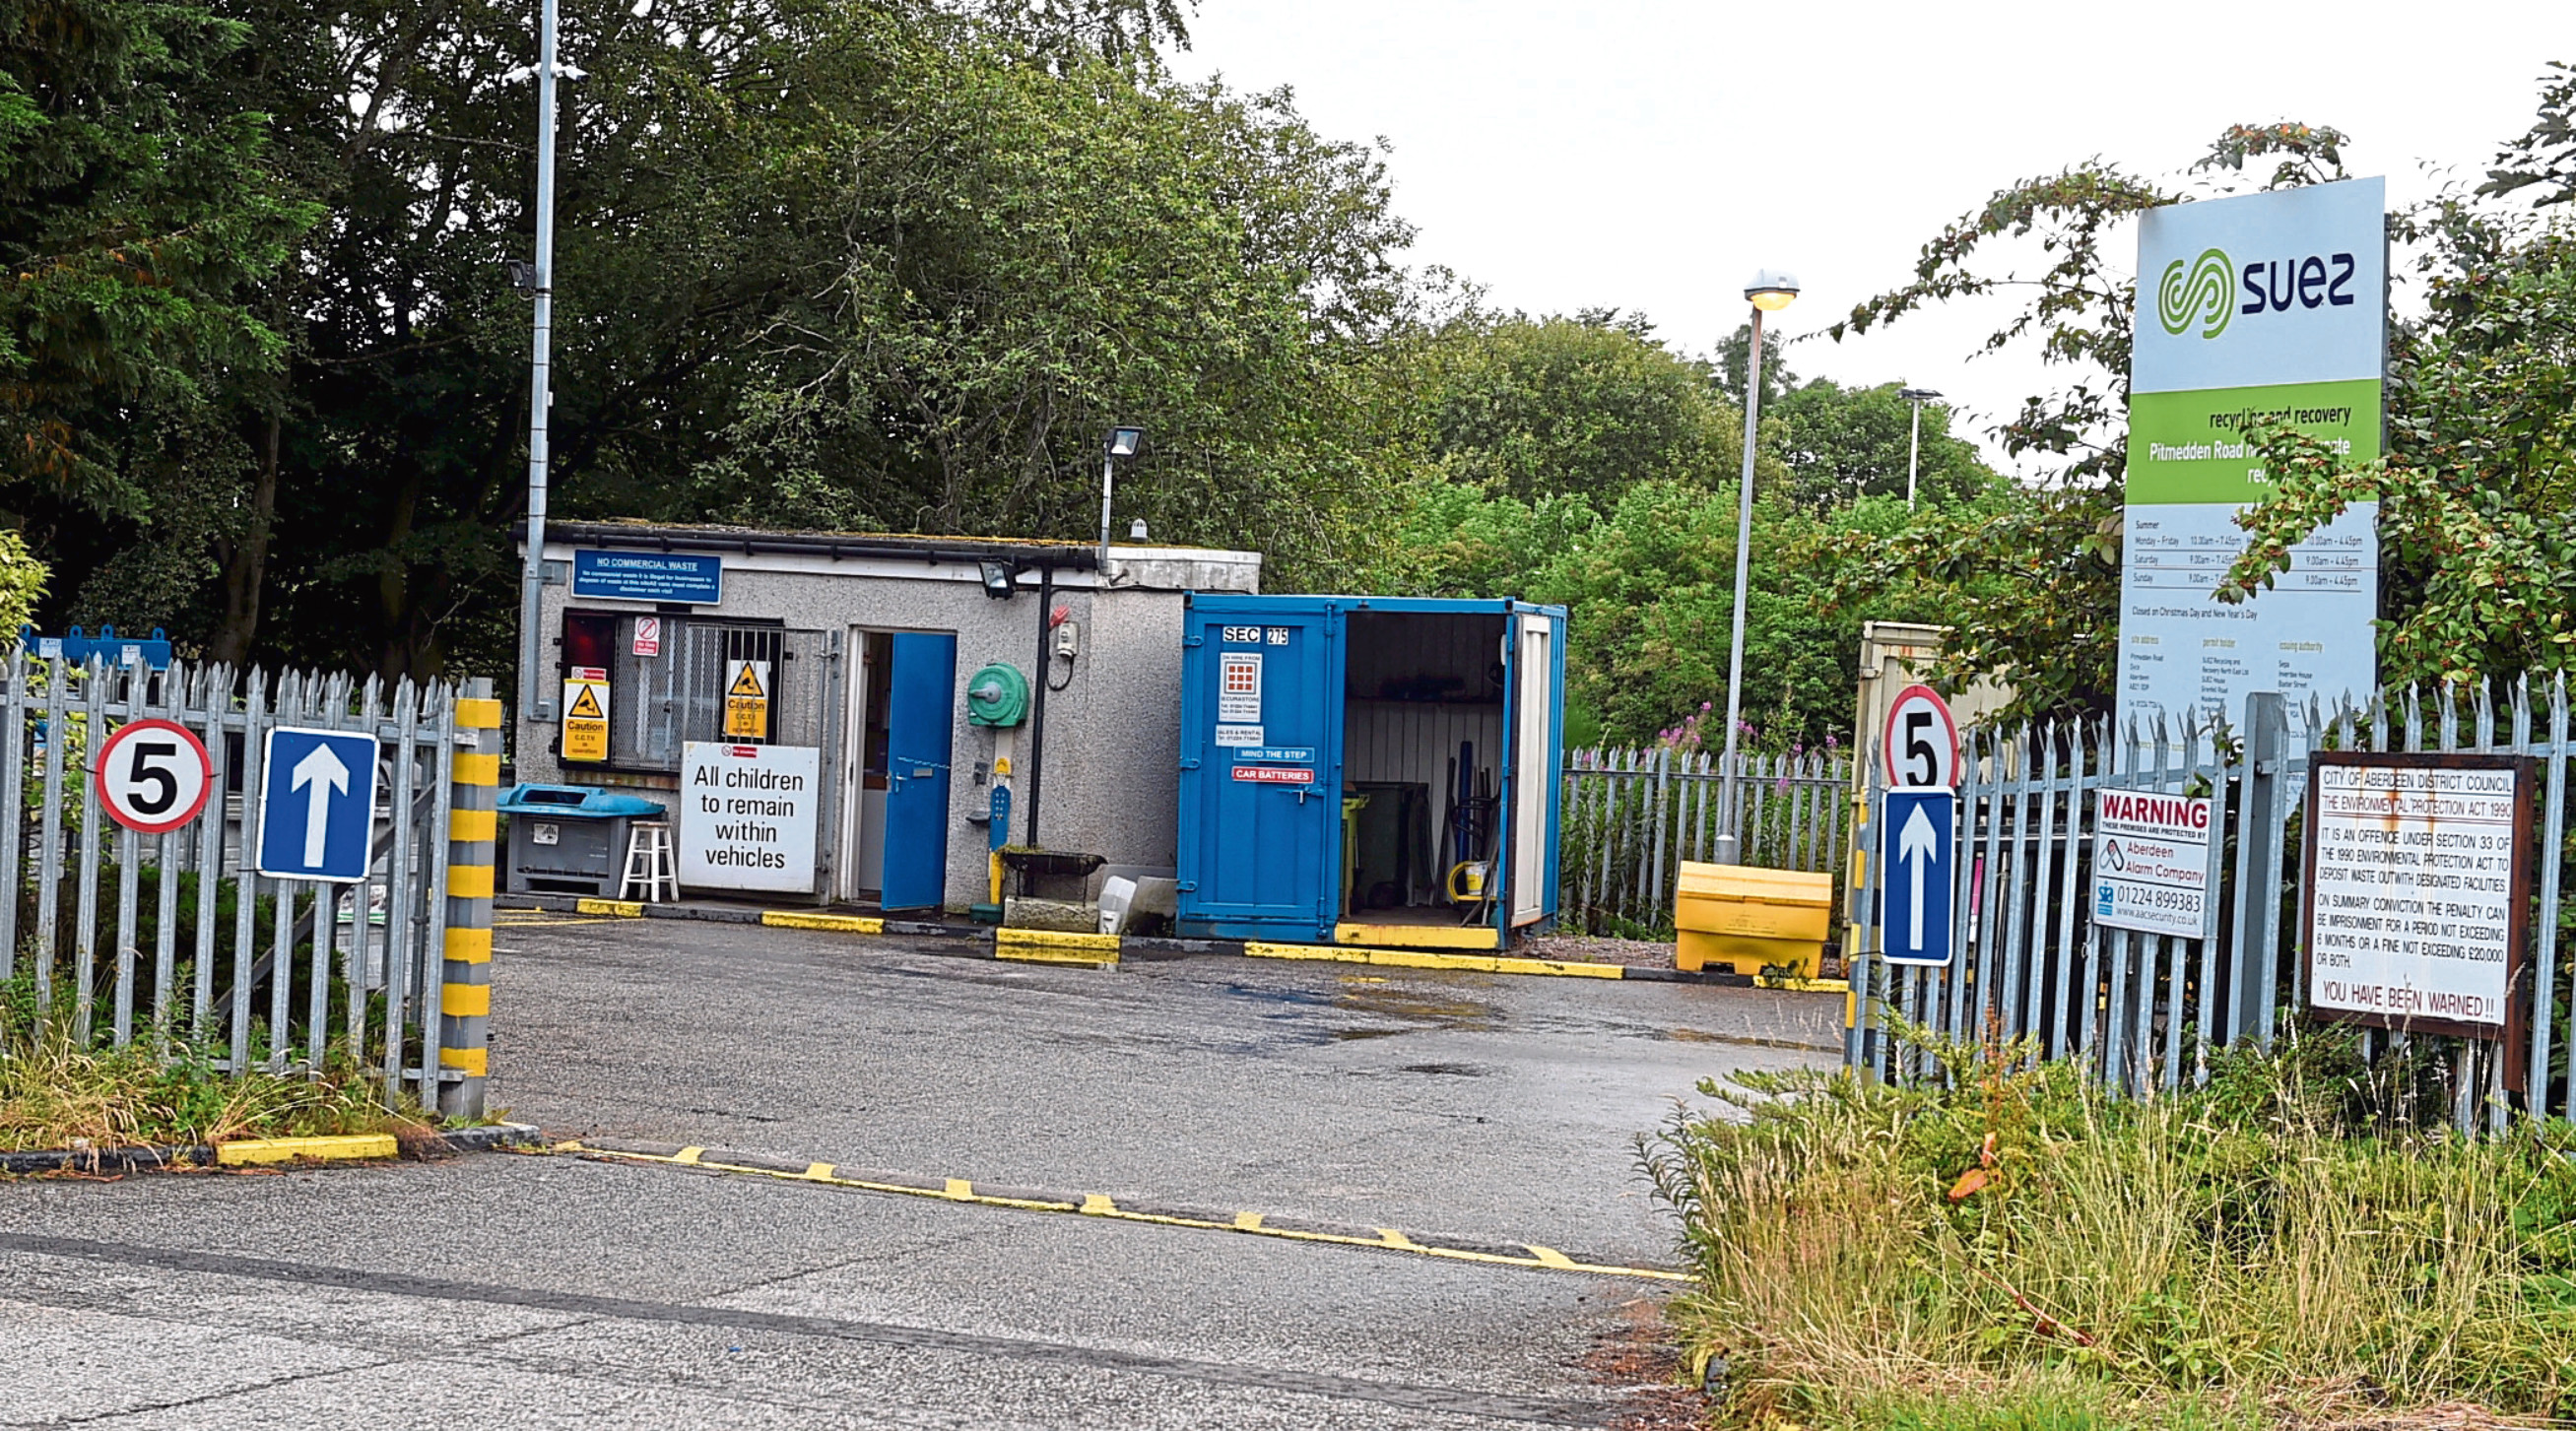 Dyce recycling centre